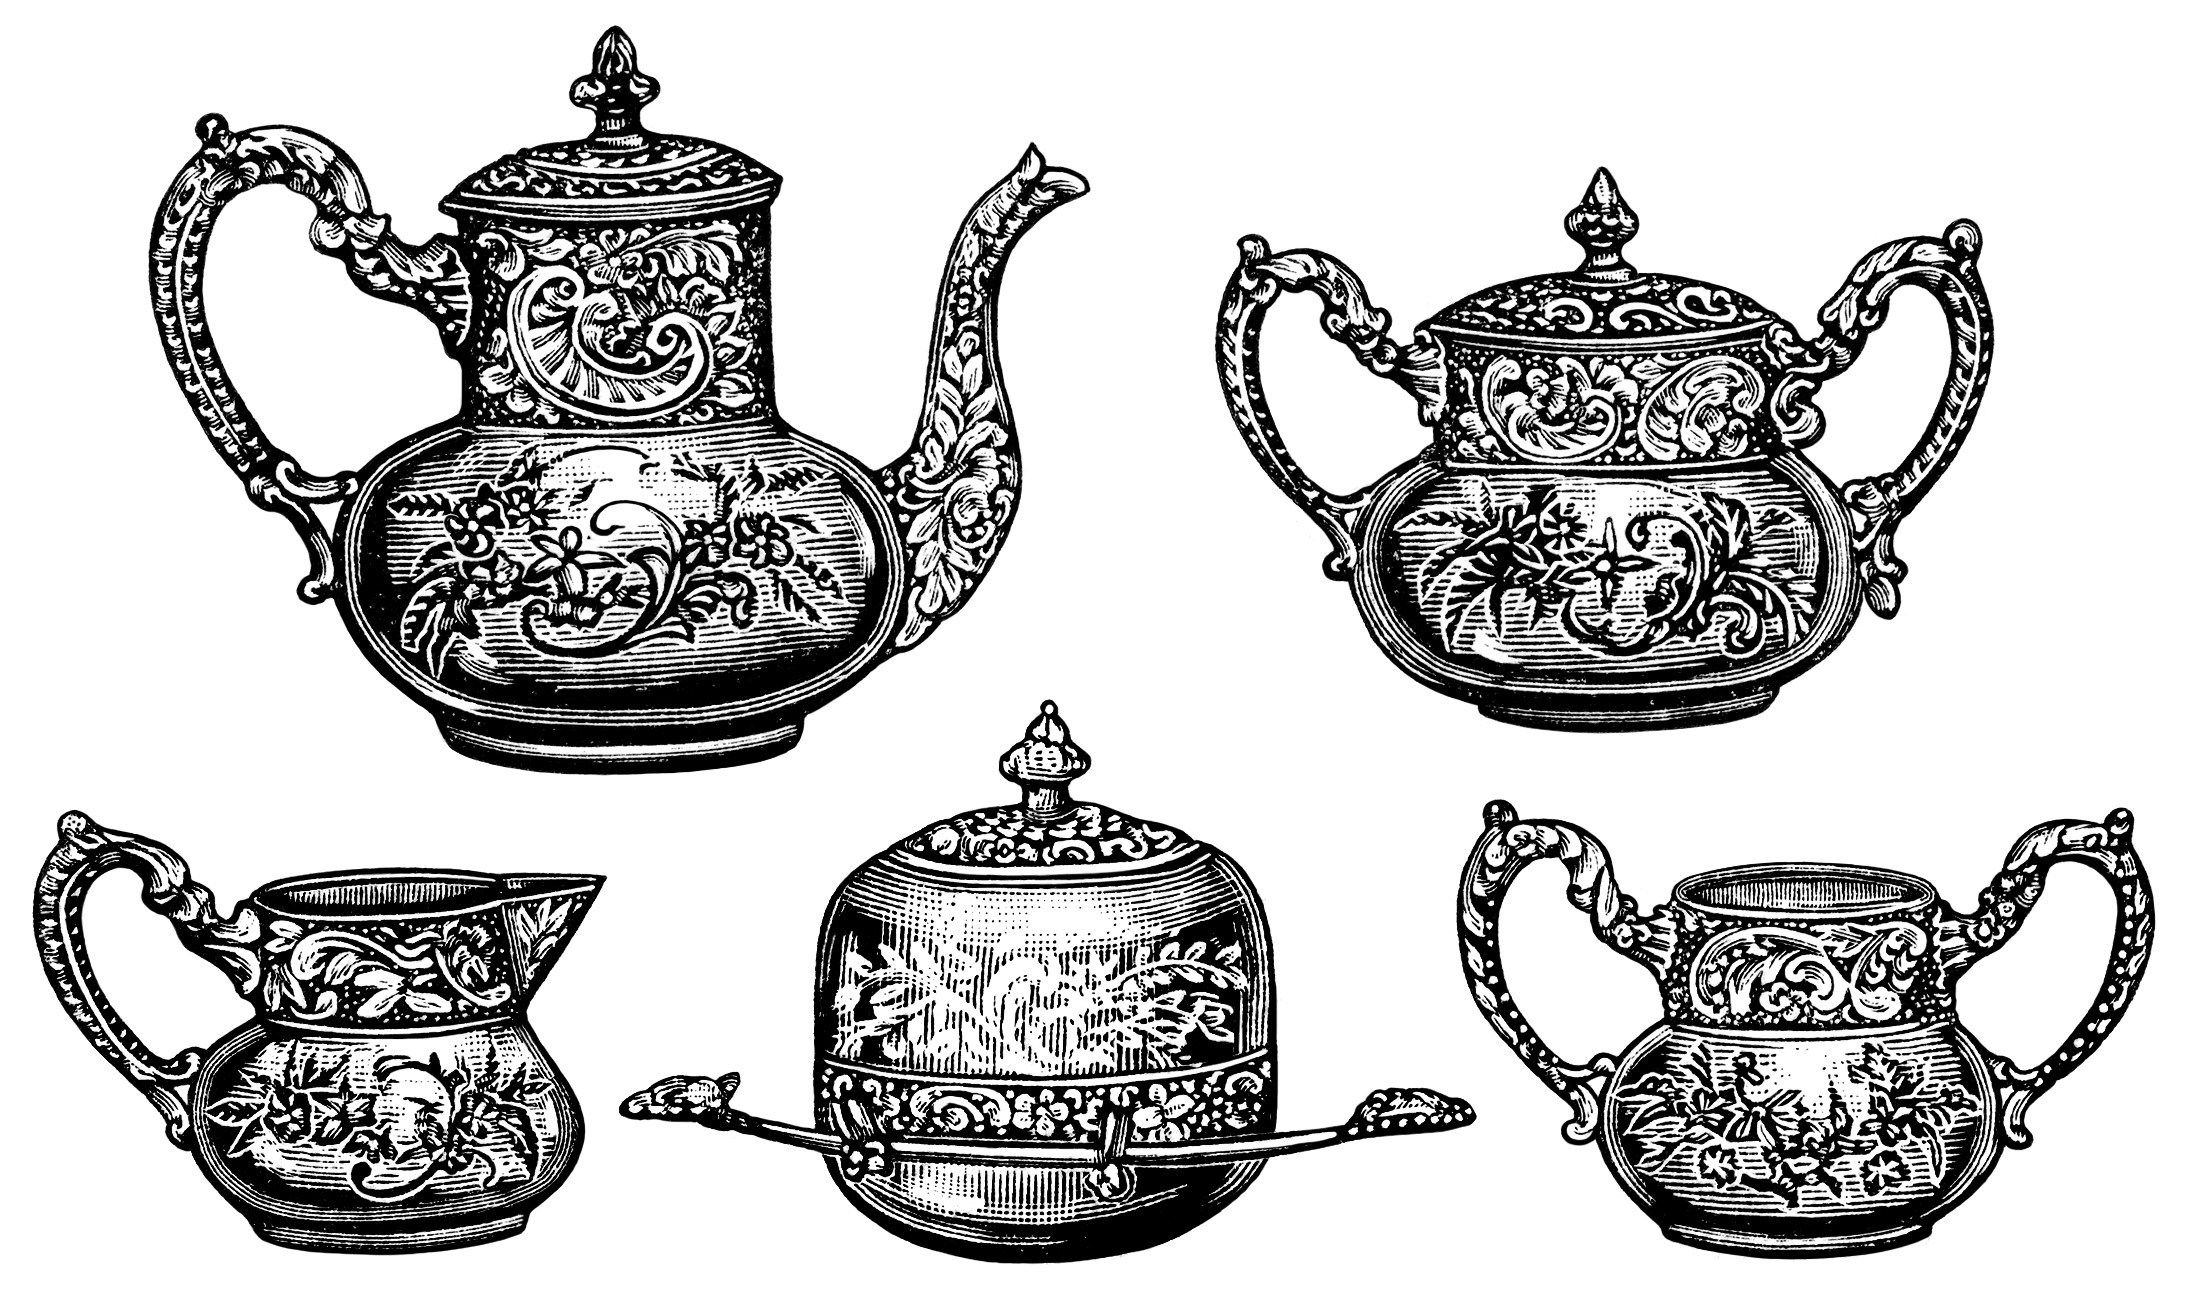 Victorian tea set, antique teapot, vintage tea clip art.